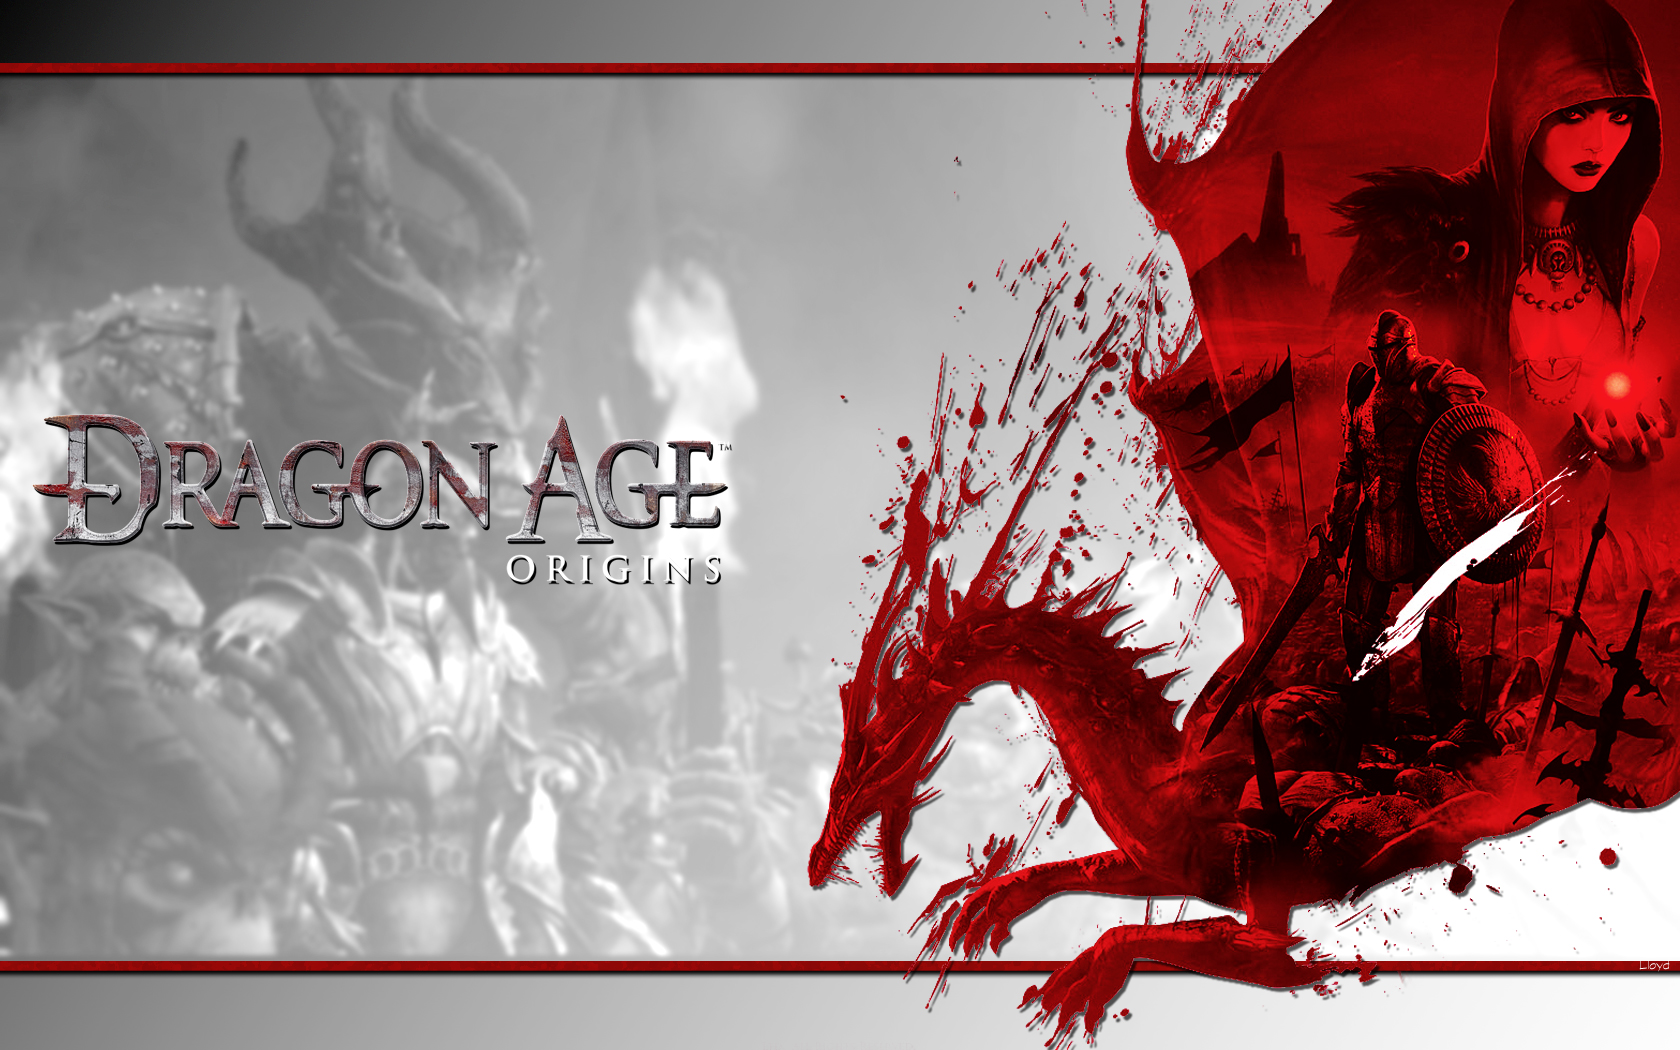 Dragon Age: Origins wp by igotgame1075